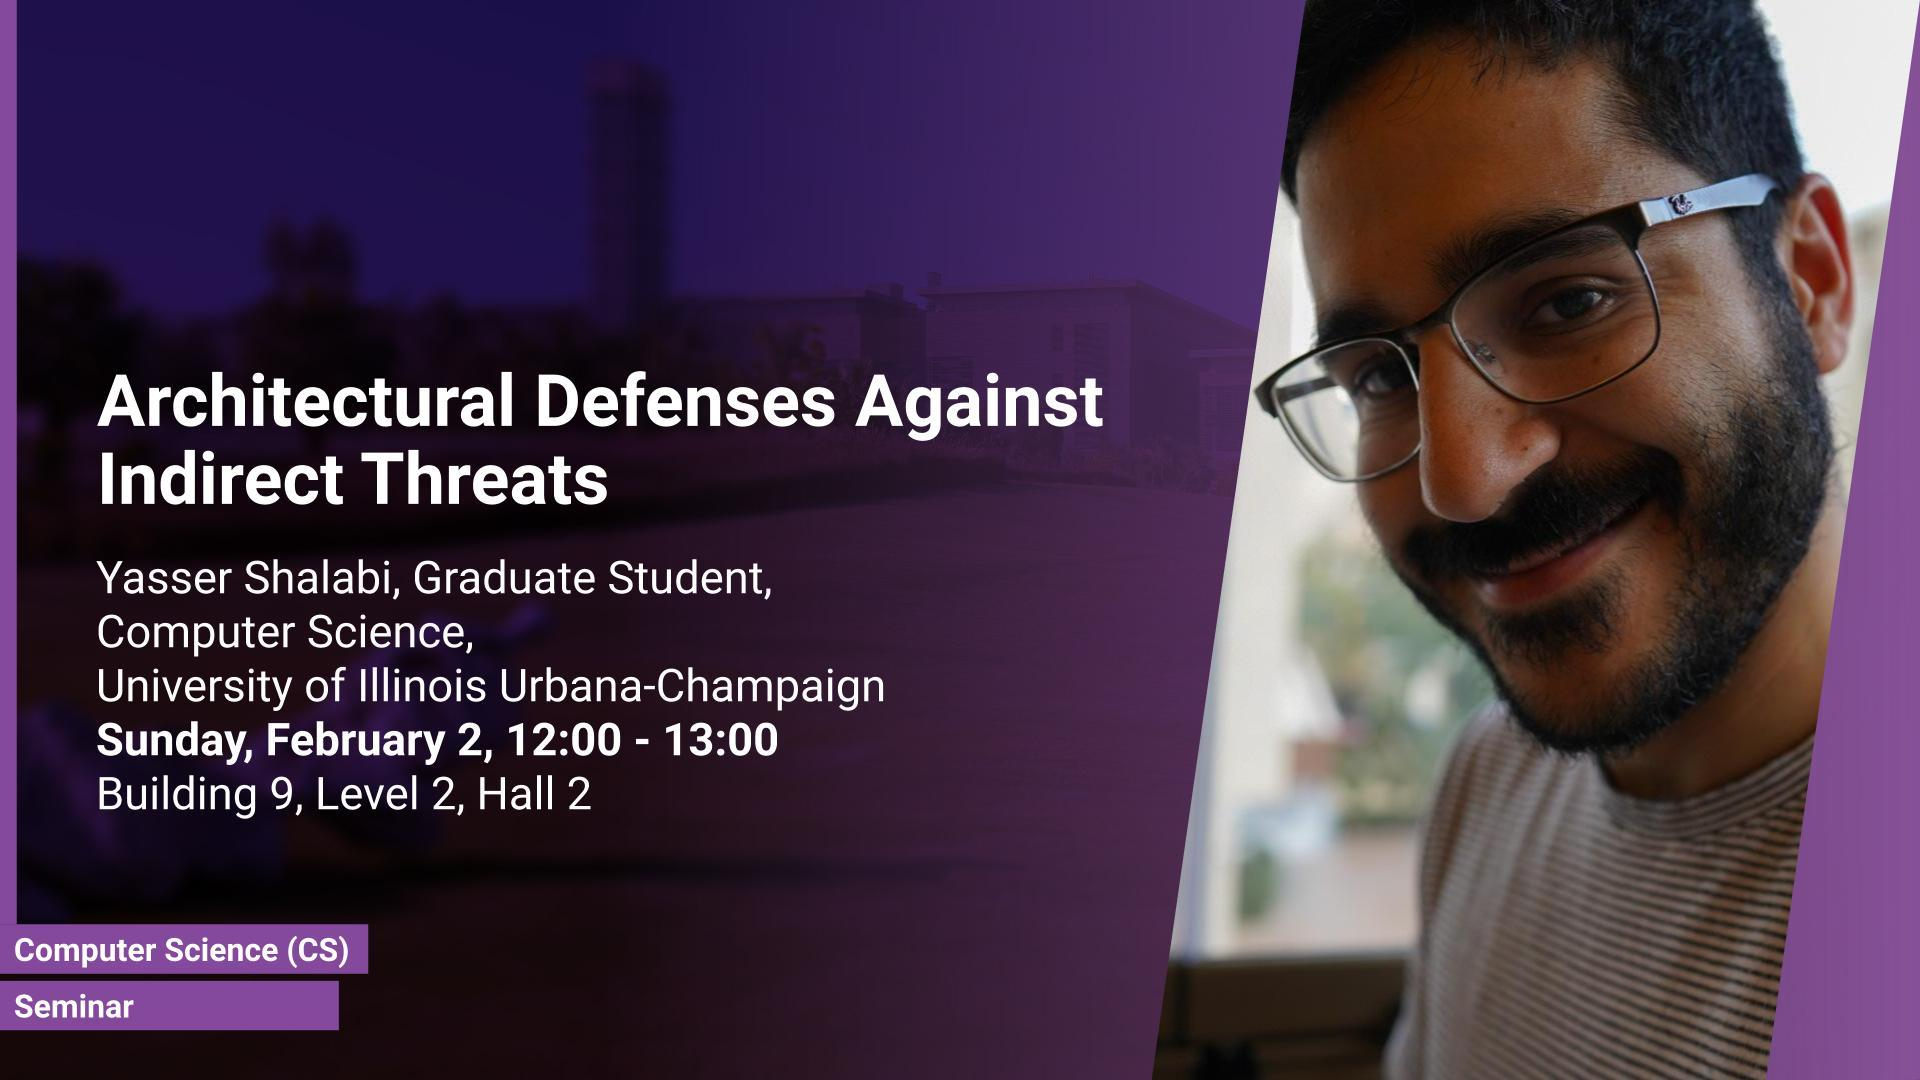 KAUST CEMSE CS Seminar Architectural Defenses Against Indirect Threats